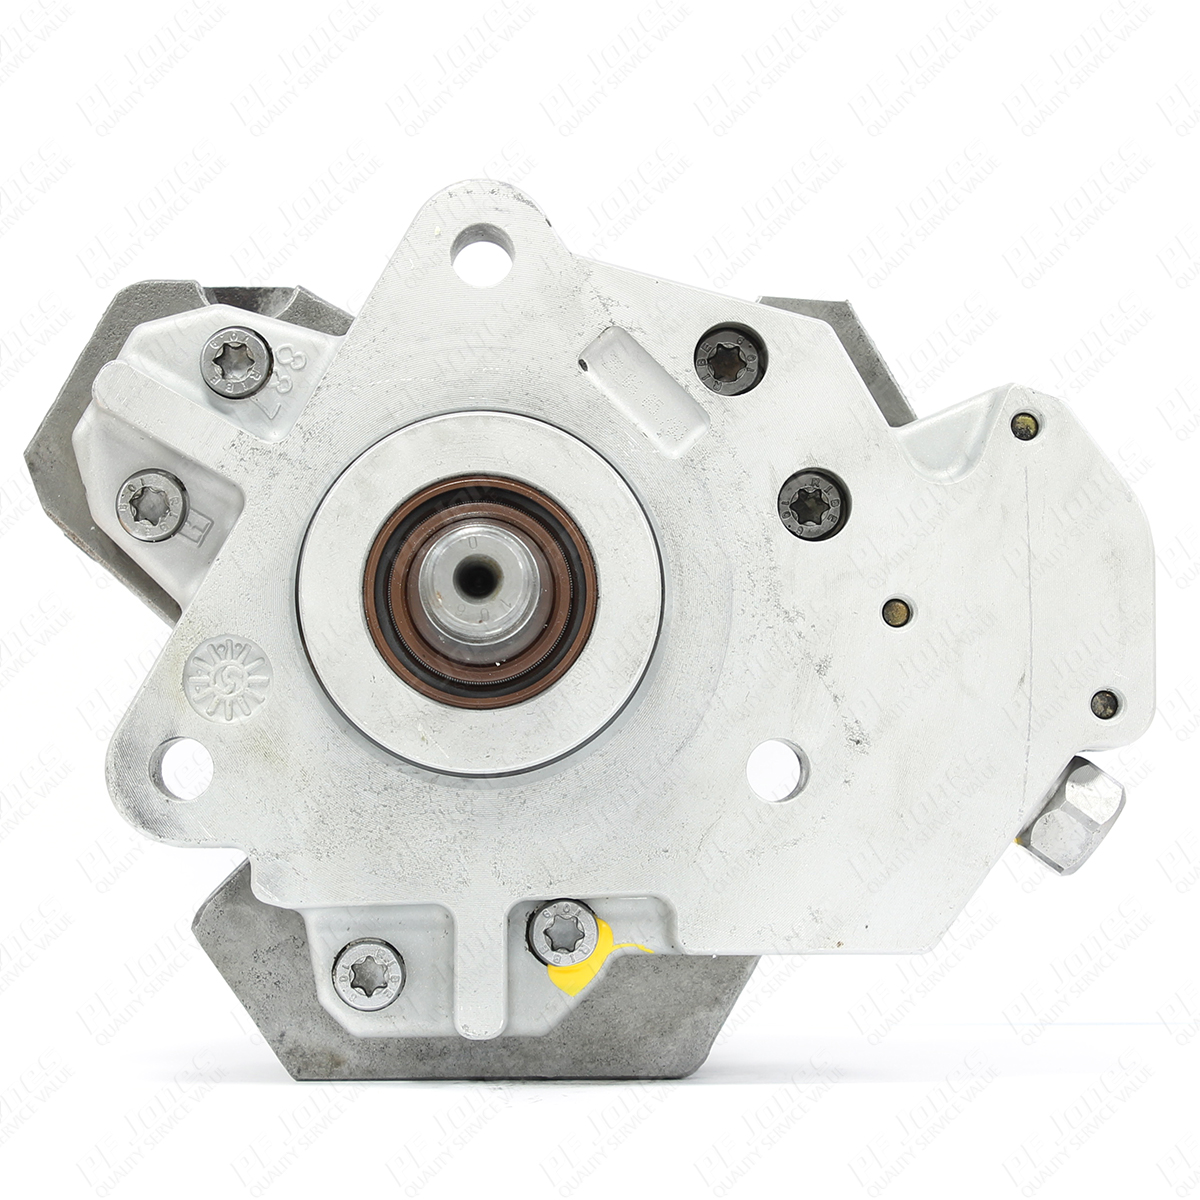 Nissan Primastar 2.5 dCi 2003-2011 Reconditioned Bosch Diesel Fuel Pump 0445010033